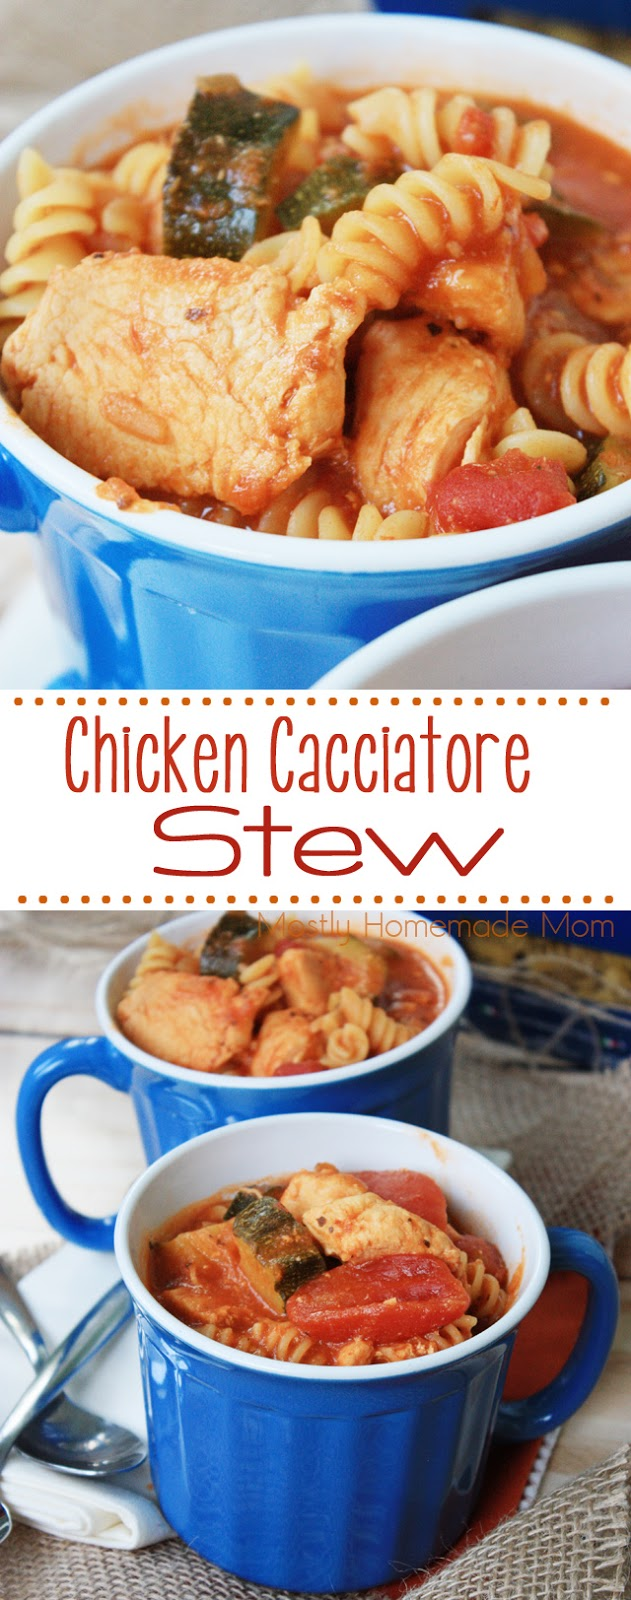 chicken cacciatore-recipe